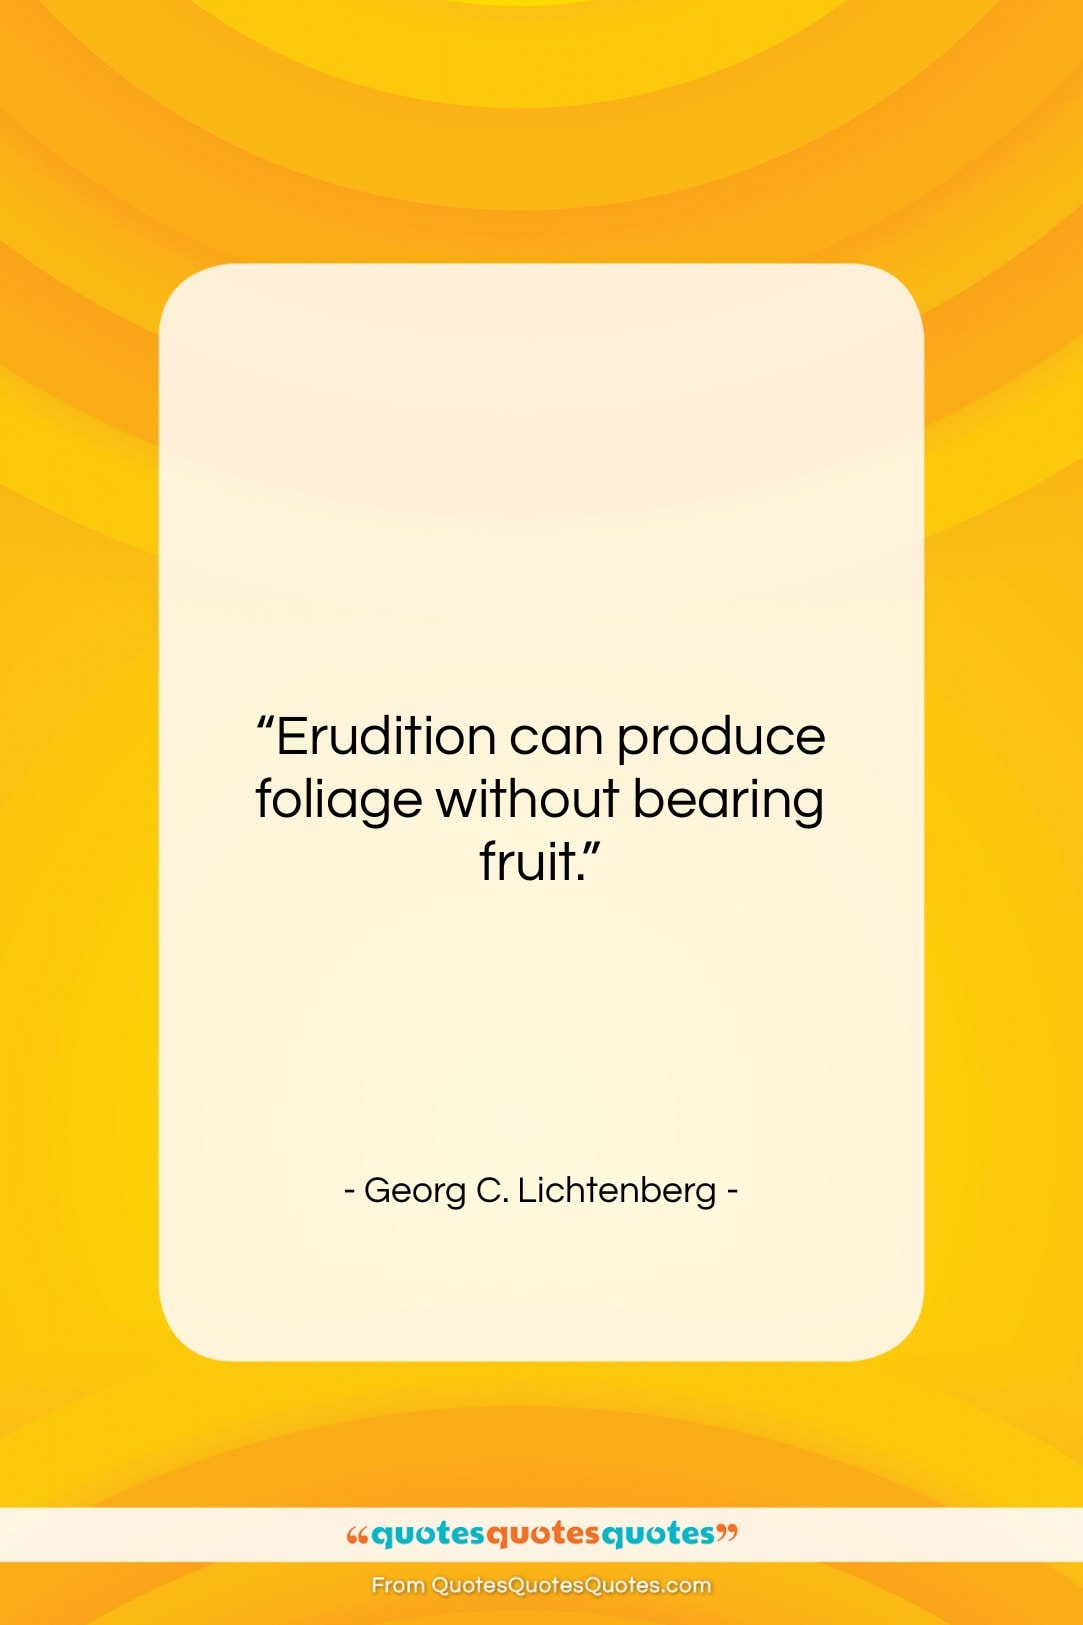 """Georg C. Lichtenberg quote: """"Erudition can produce foliage without bearing fruit….""""- at QuotesQuotesQuotes.com"""